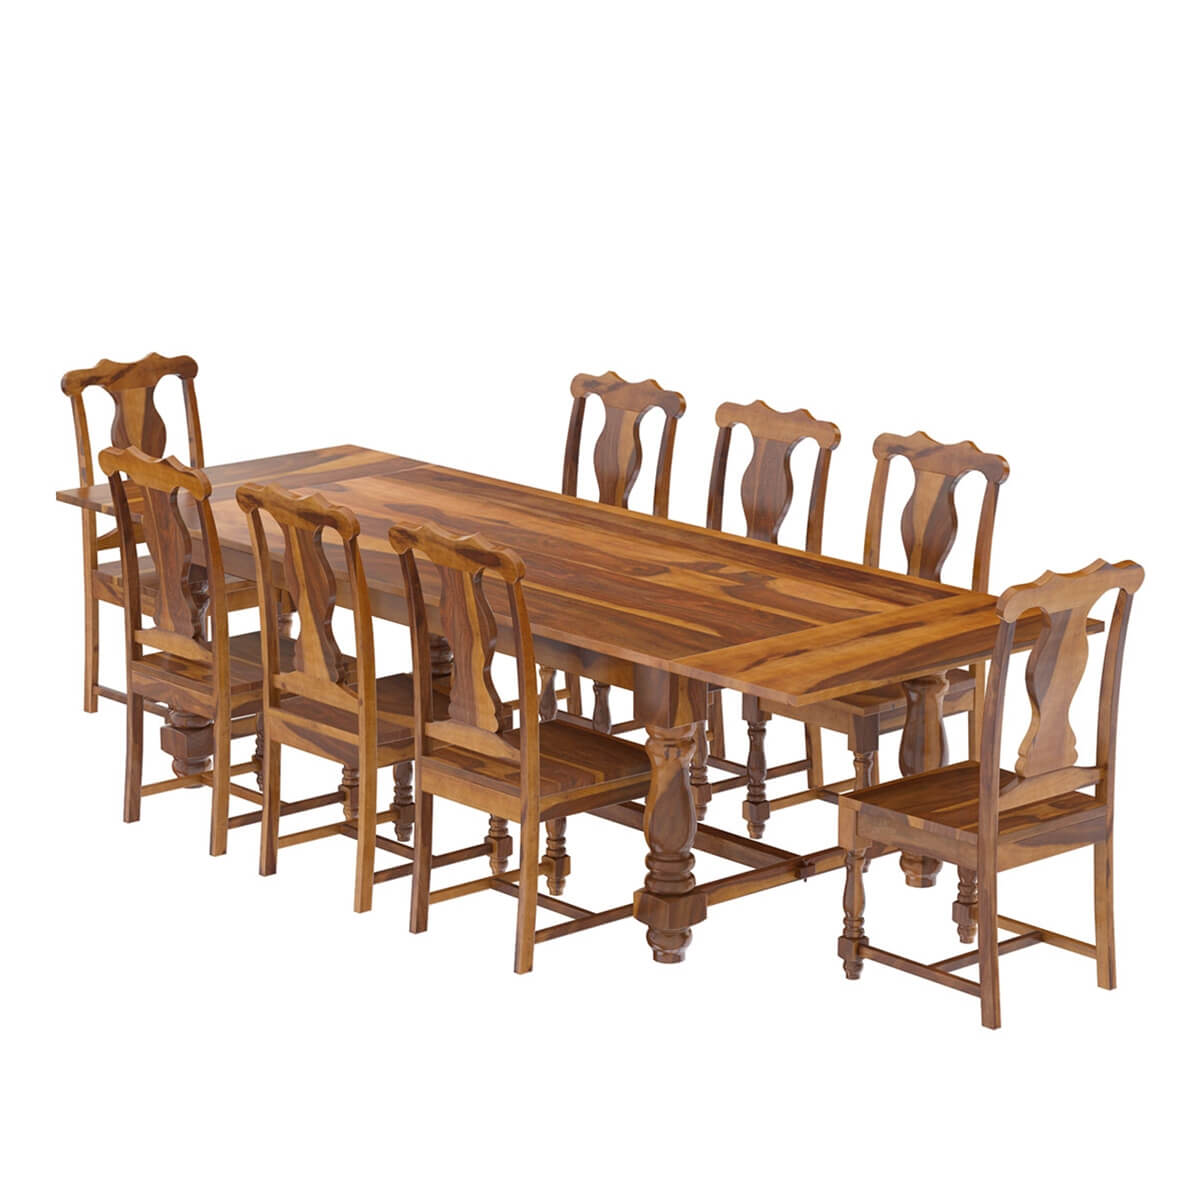 Rustic solid wood dining table chair set furniture w for Wood dining table set